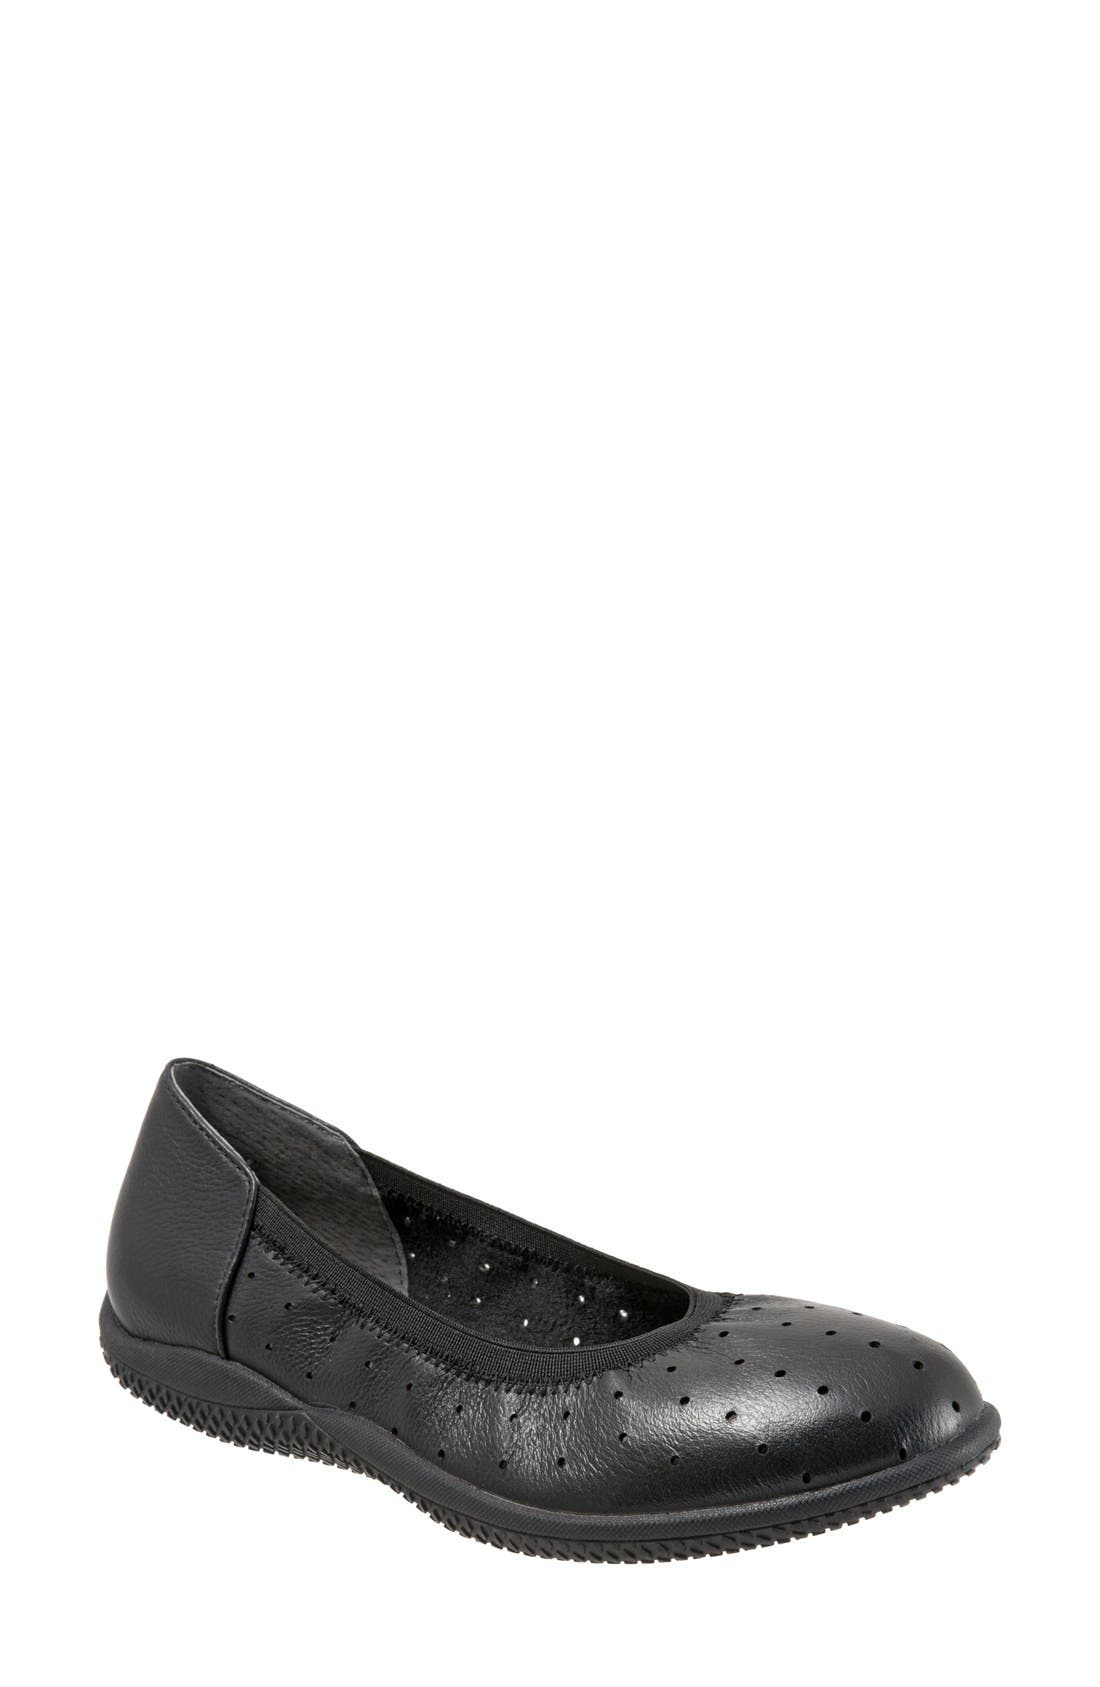 SOFTWALK<SUP>®</SUP> 'Hampshire' Dot Perforated Ballet Flat, Main, color, BLACK LEATHER